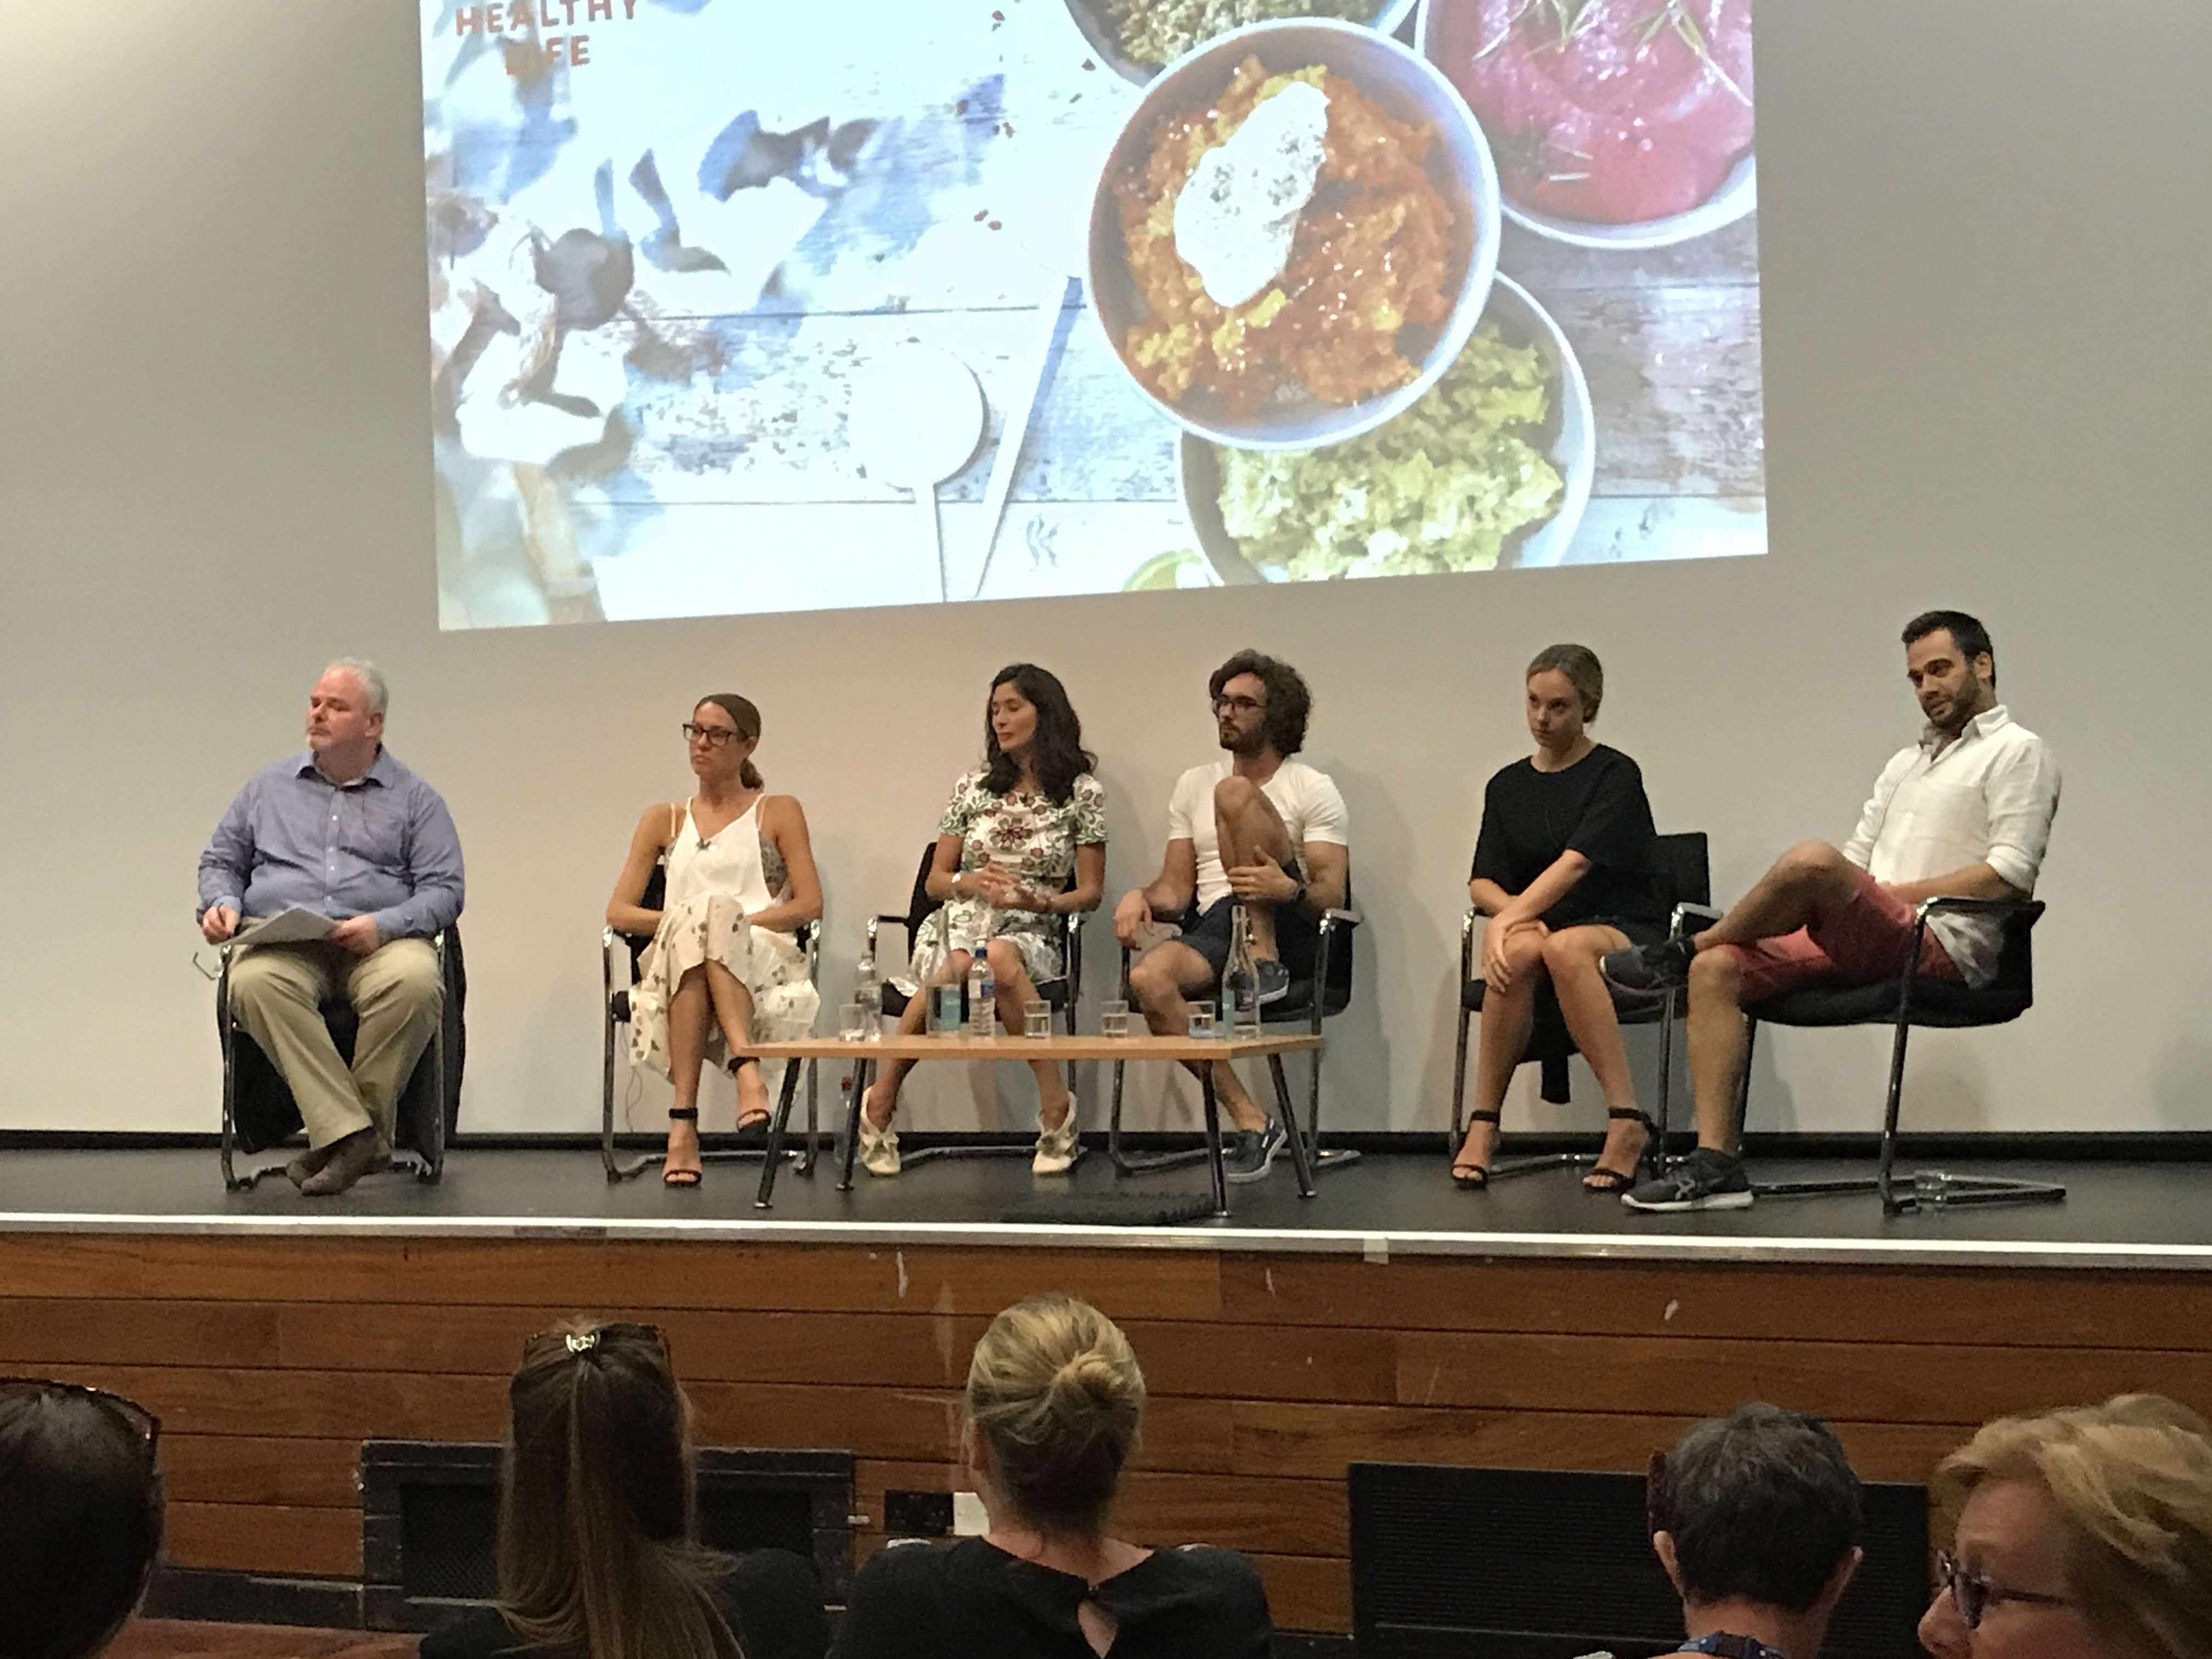 The How to Eat Well panel